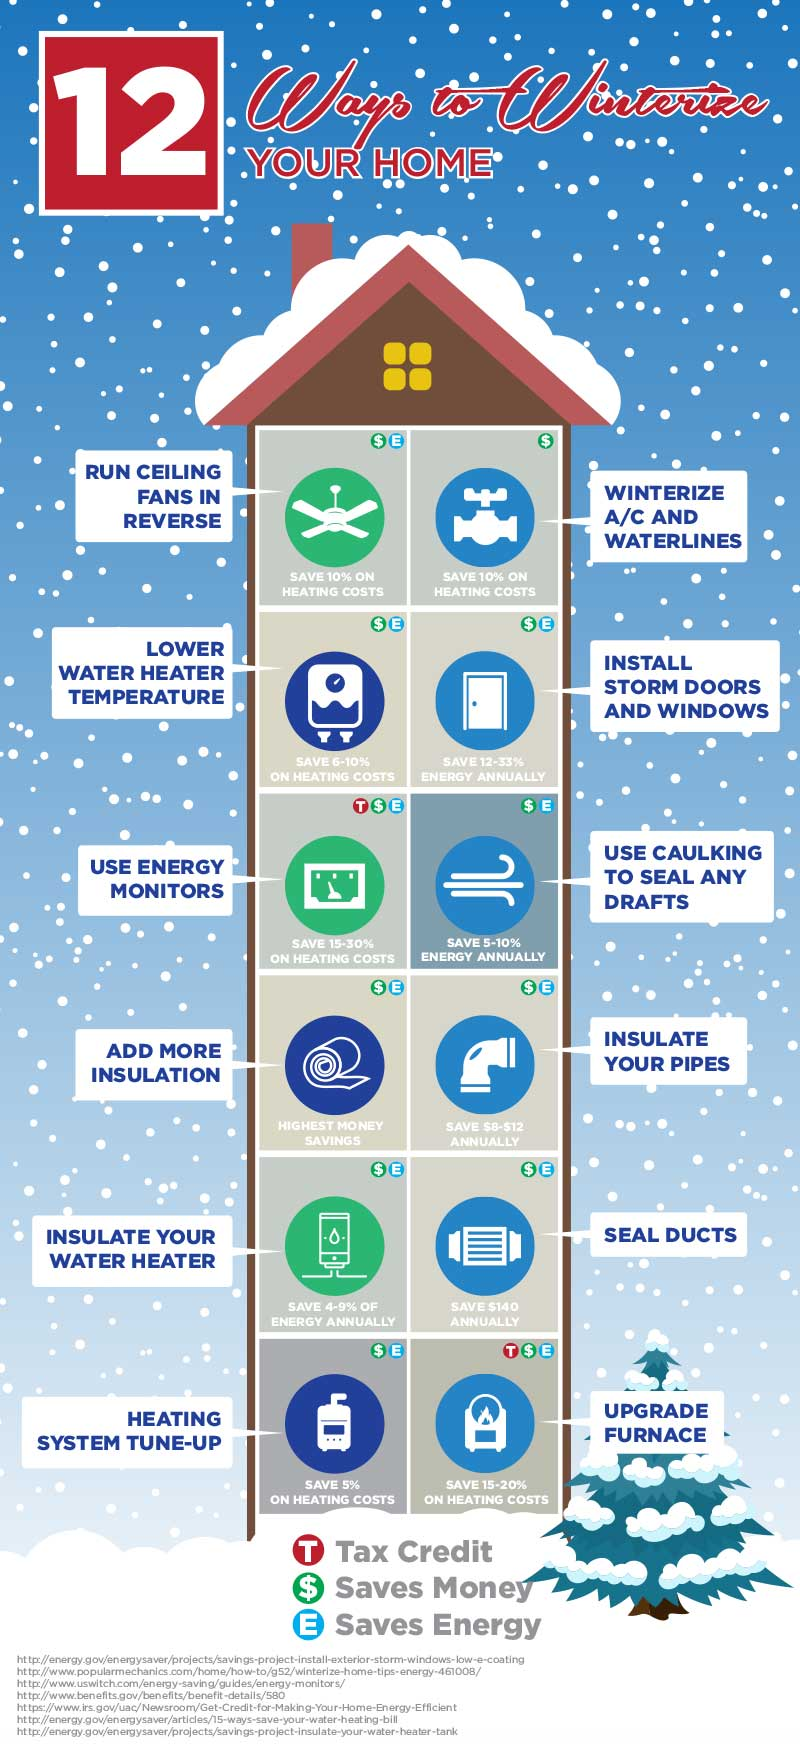 12 Ways to Winterize your Home